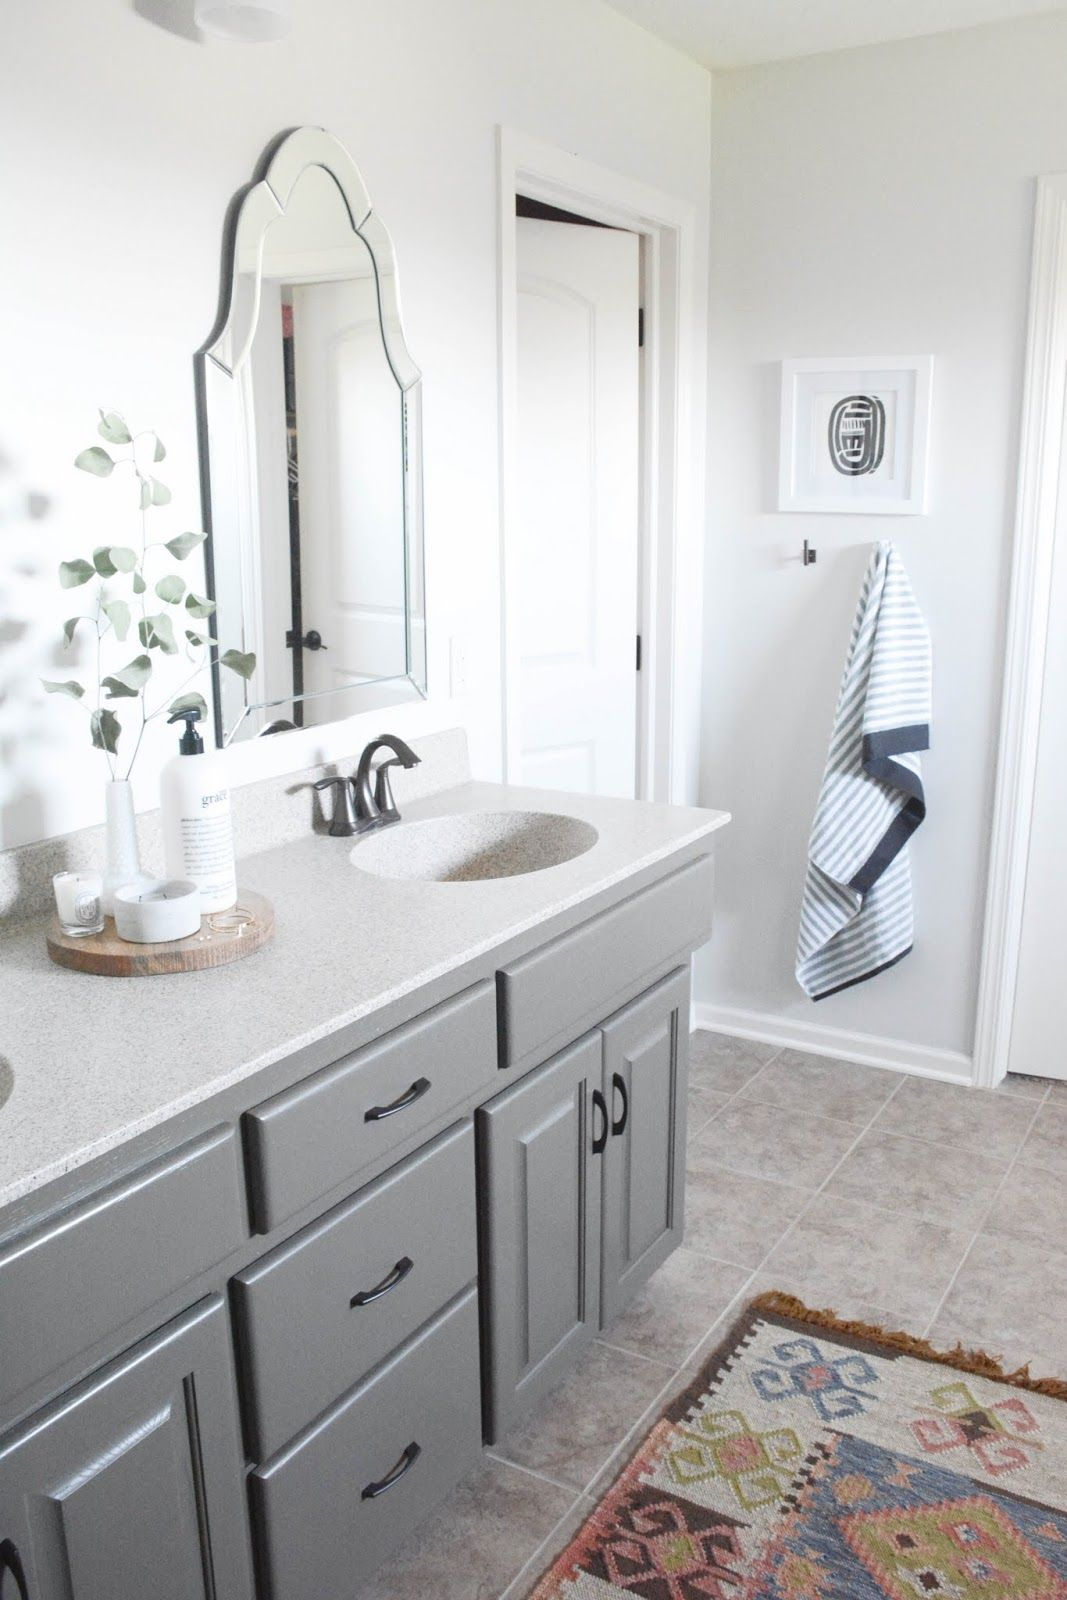 Master Bathroom // oak cabinets painted Sherwin Williams Porpoise, walls are Behr Silver Drop, kilim rug, Hickory Hardware Greenwich pulls